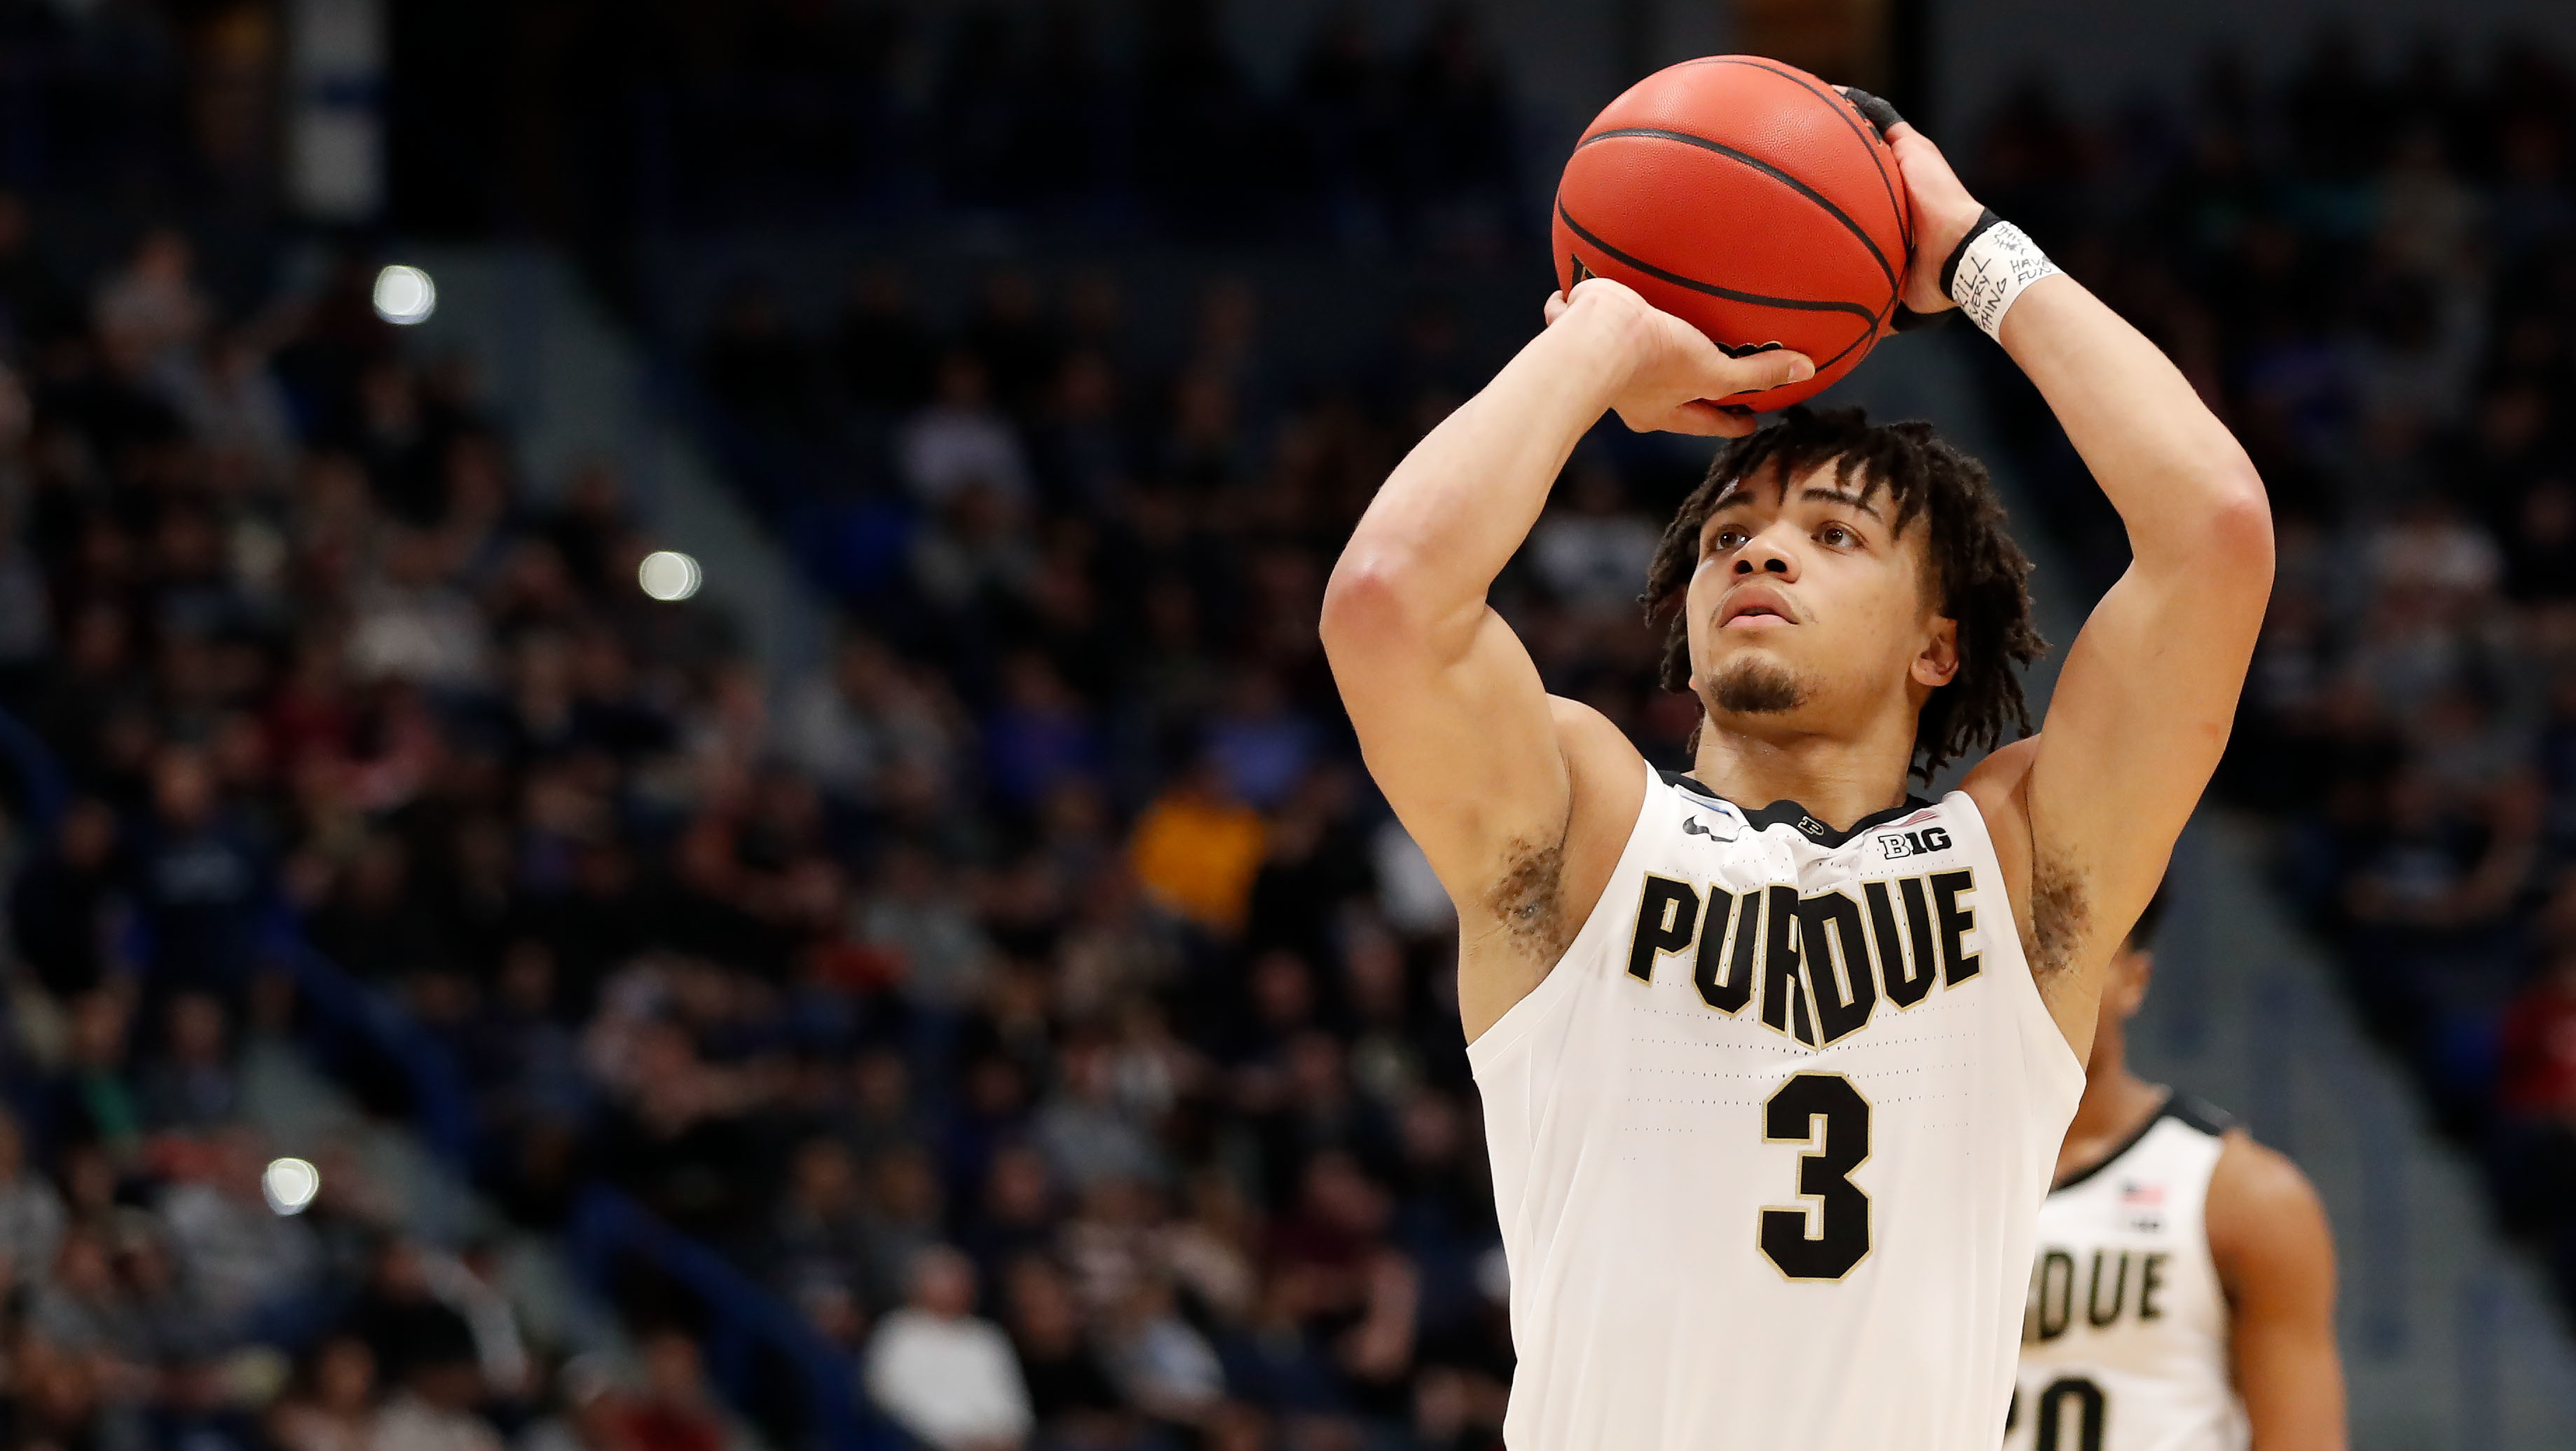 Purdue Basketball Bleacher Report Latest News Scores Stats And